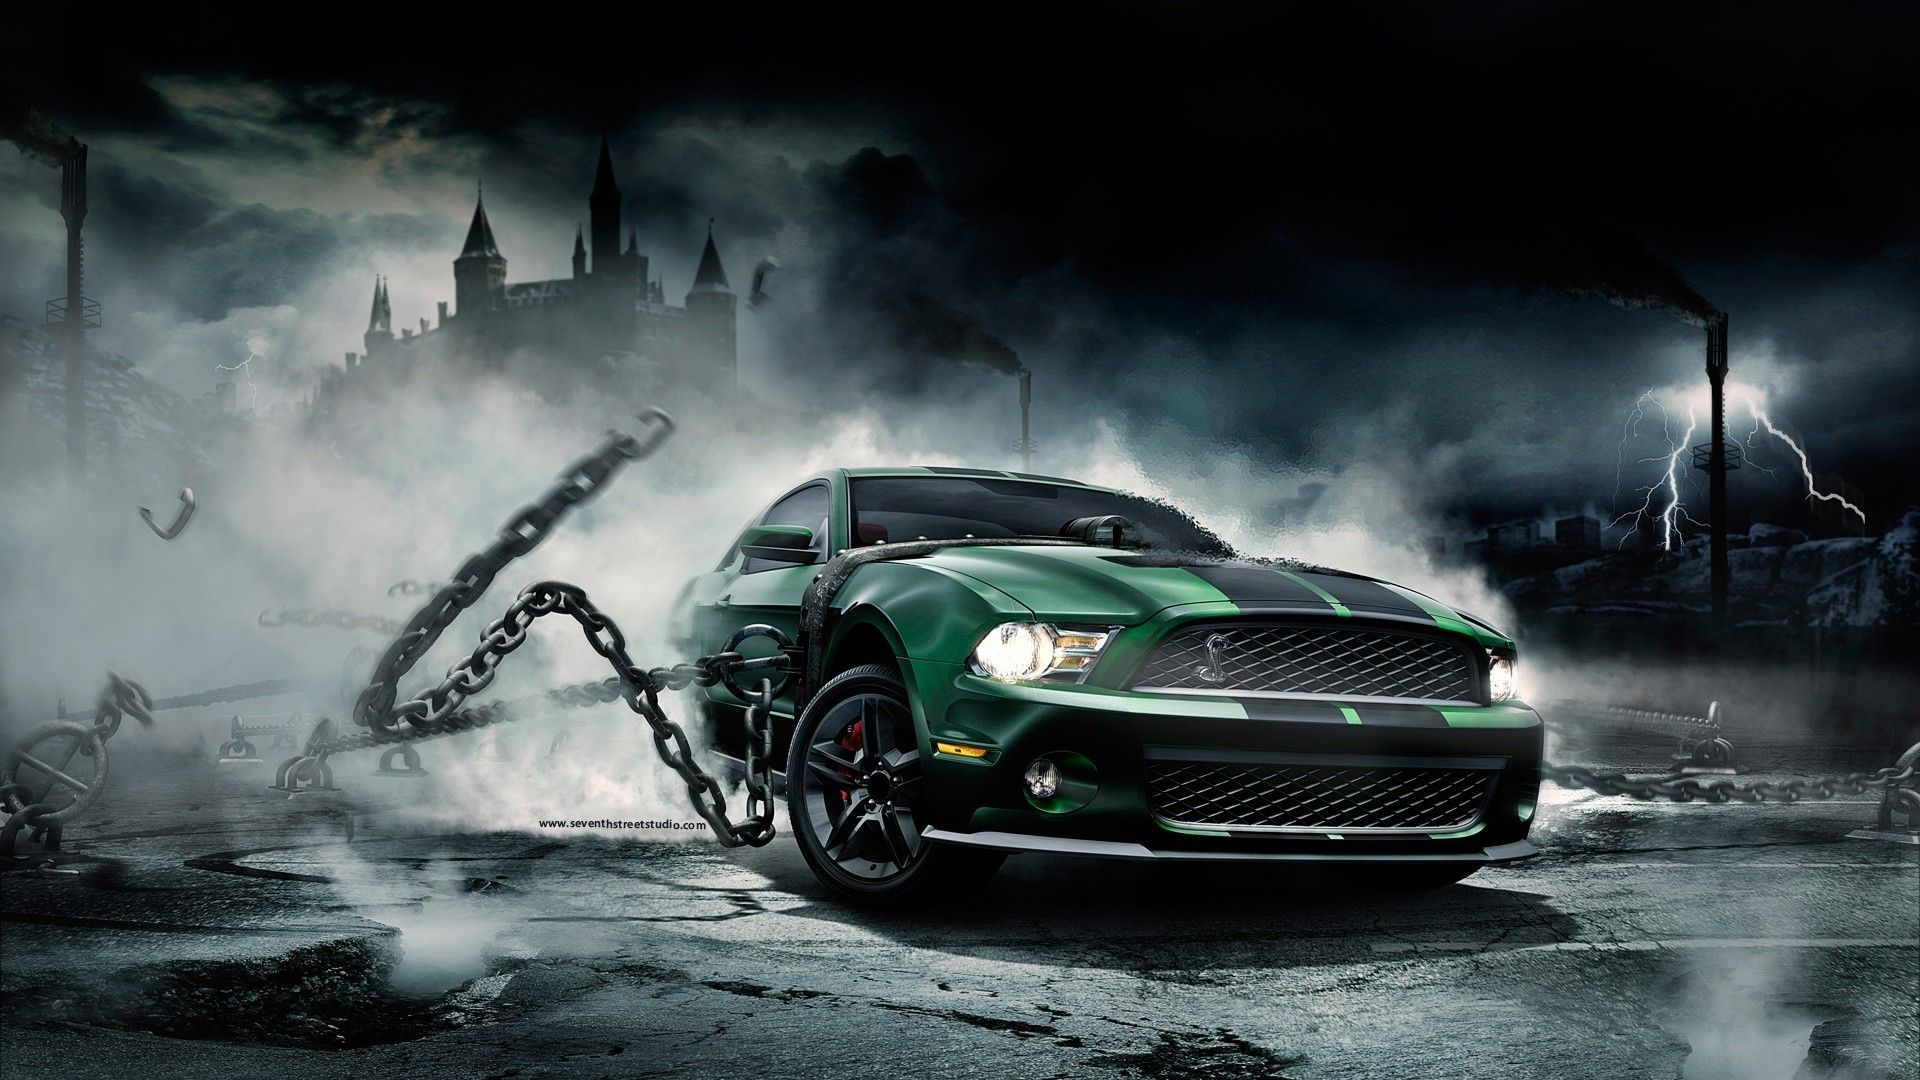 Images For World Best Pictures Wallpapers Animal 1920 1080 World Best Wallpapers 50 Wallpapers Mustang Wallpaper Ford Mustang Wallpaper Car Backgrounds